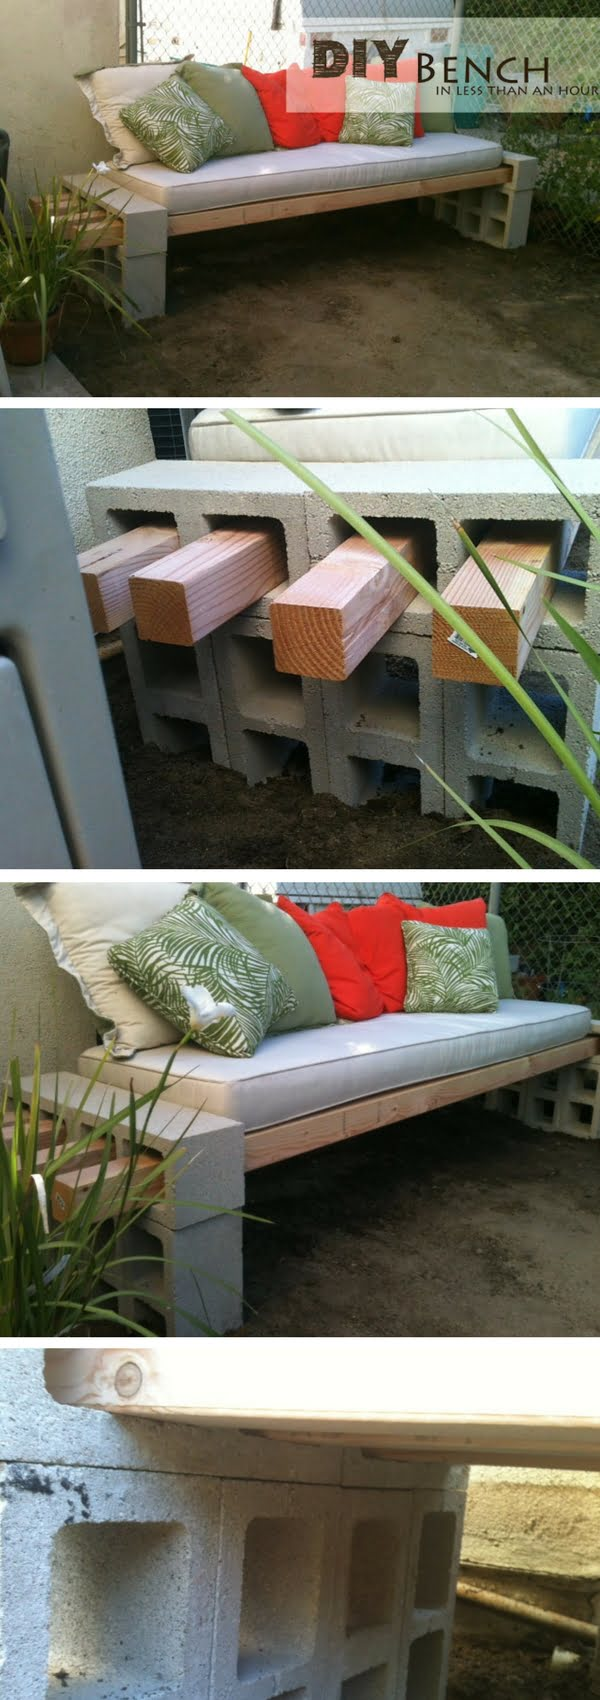 Check out how to build a quick and easy DIY bench for the outdoors